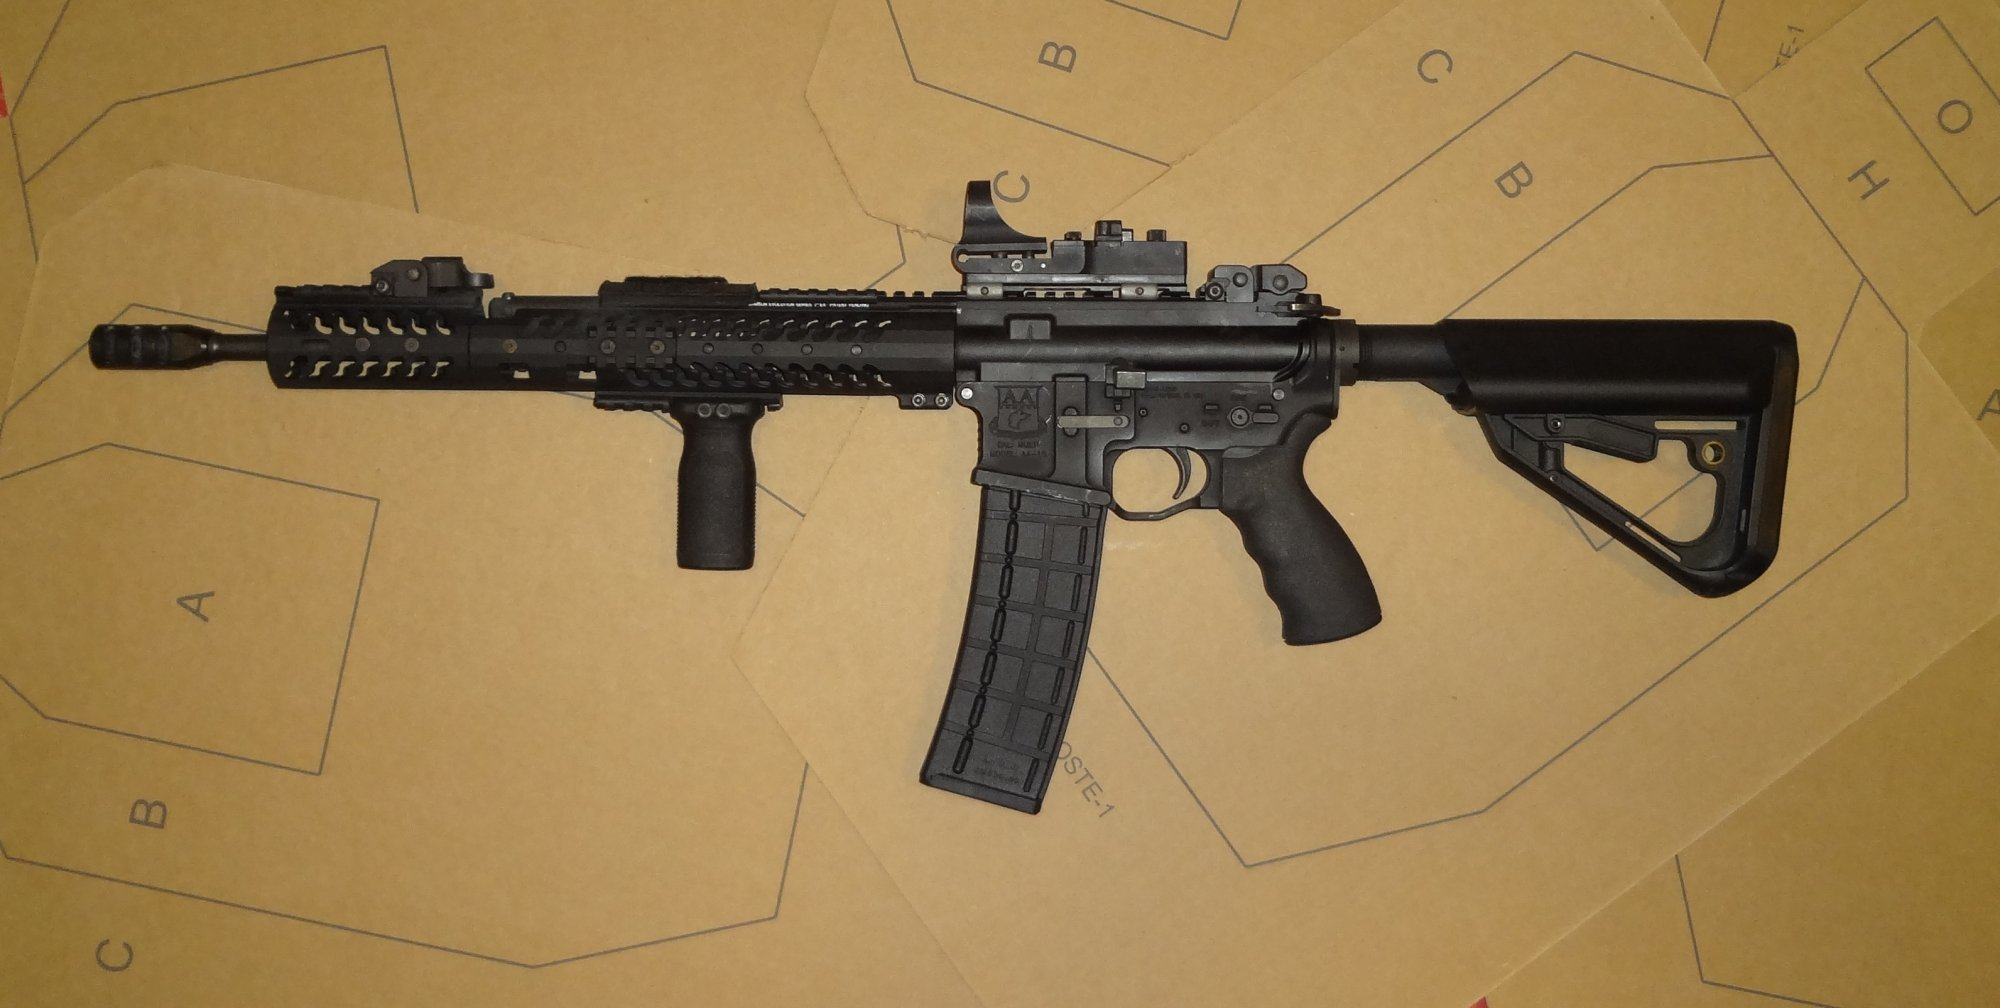 http://www.defensereview.com/wp-content/uploads/2013/09/MWG_IK-520_40-Round_Steel_Reinforced_Polymer_AR-15_Magazine_5.56mm_Mag_in_Adams_Arms_Piston_AR_Carbine_Jeff_Gurwitch_3_small.jpg